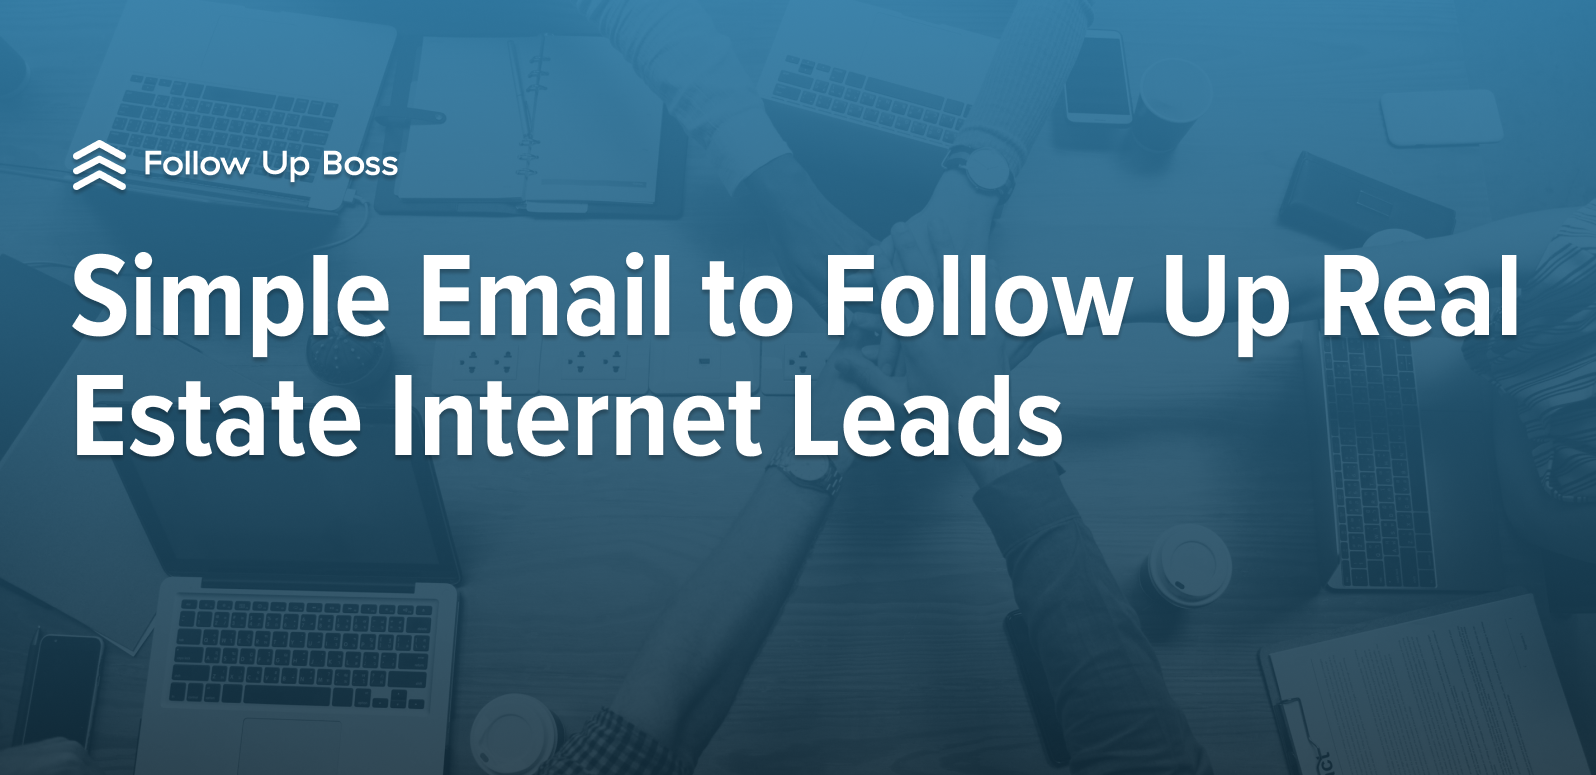 Simple Email to Follow Up Real Estate Internet Leads